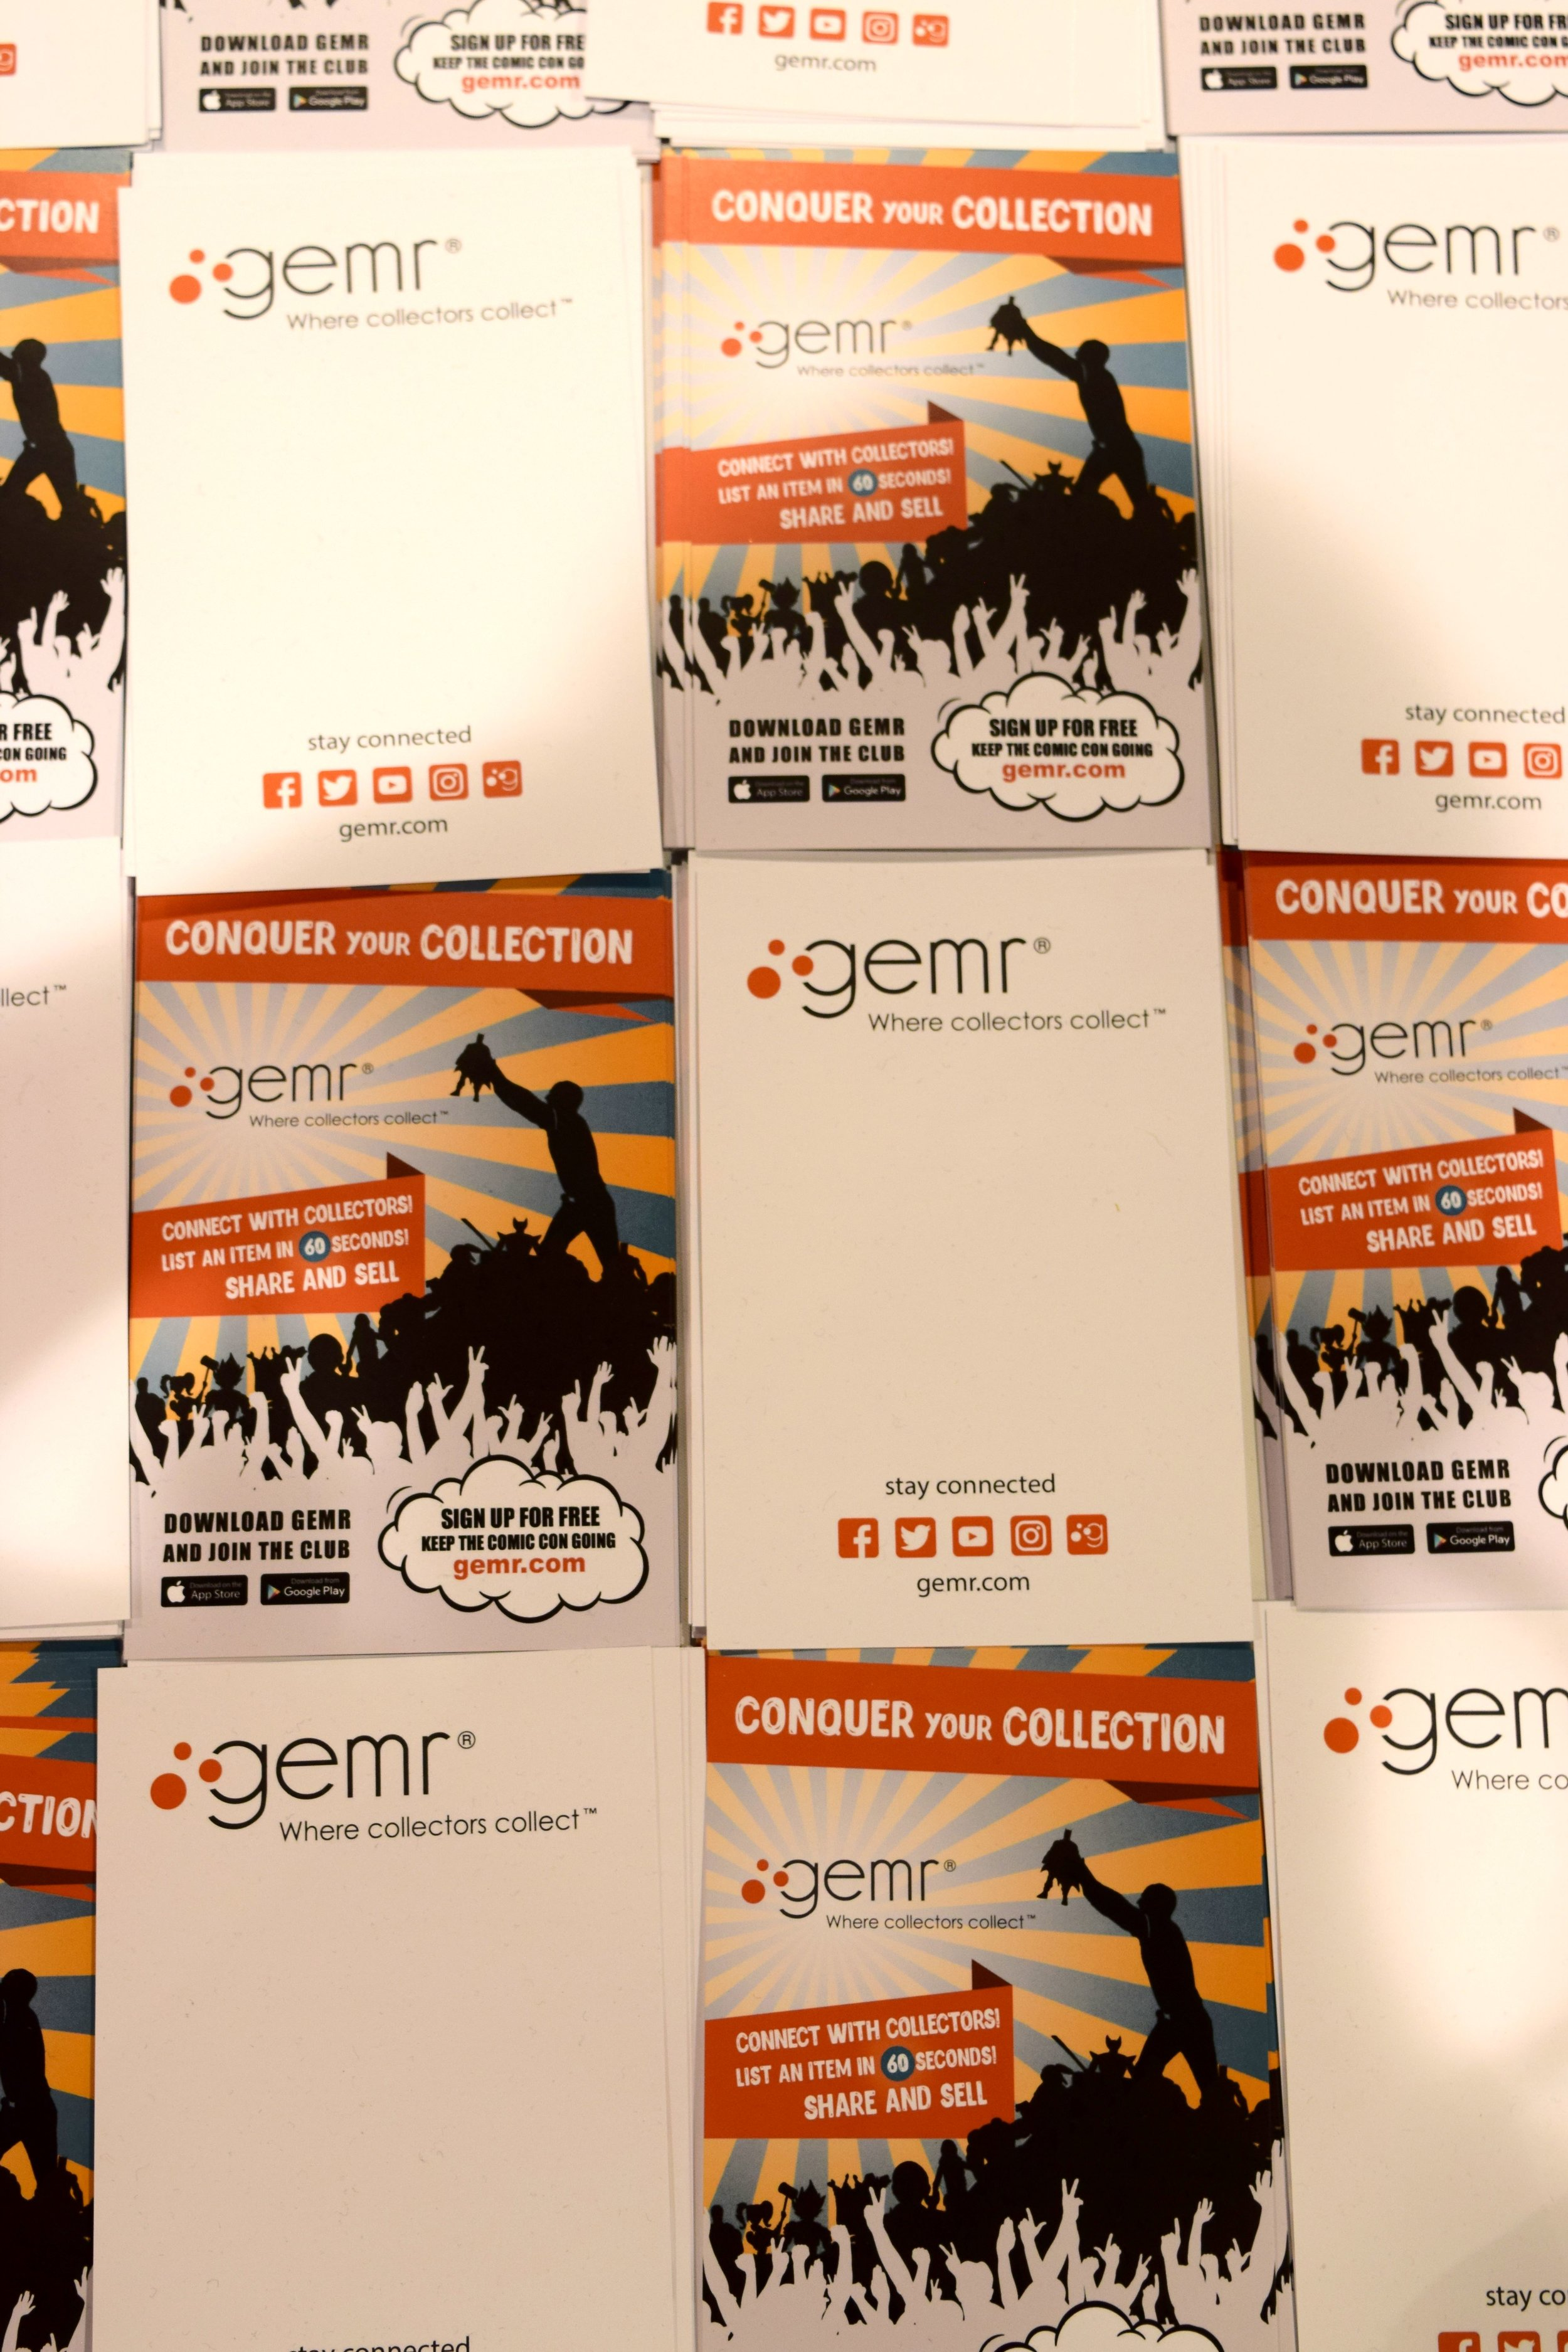 A table full of gemr.com flyers at Phoenix Comic Con 2017.